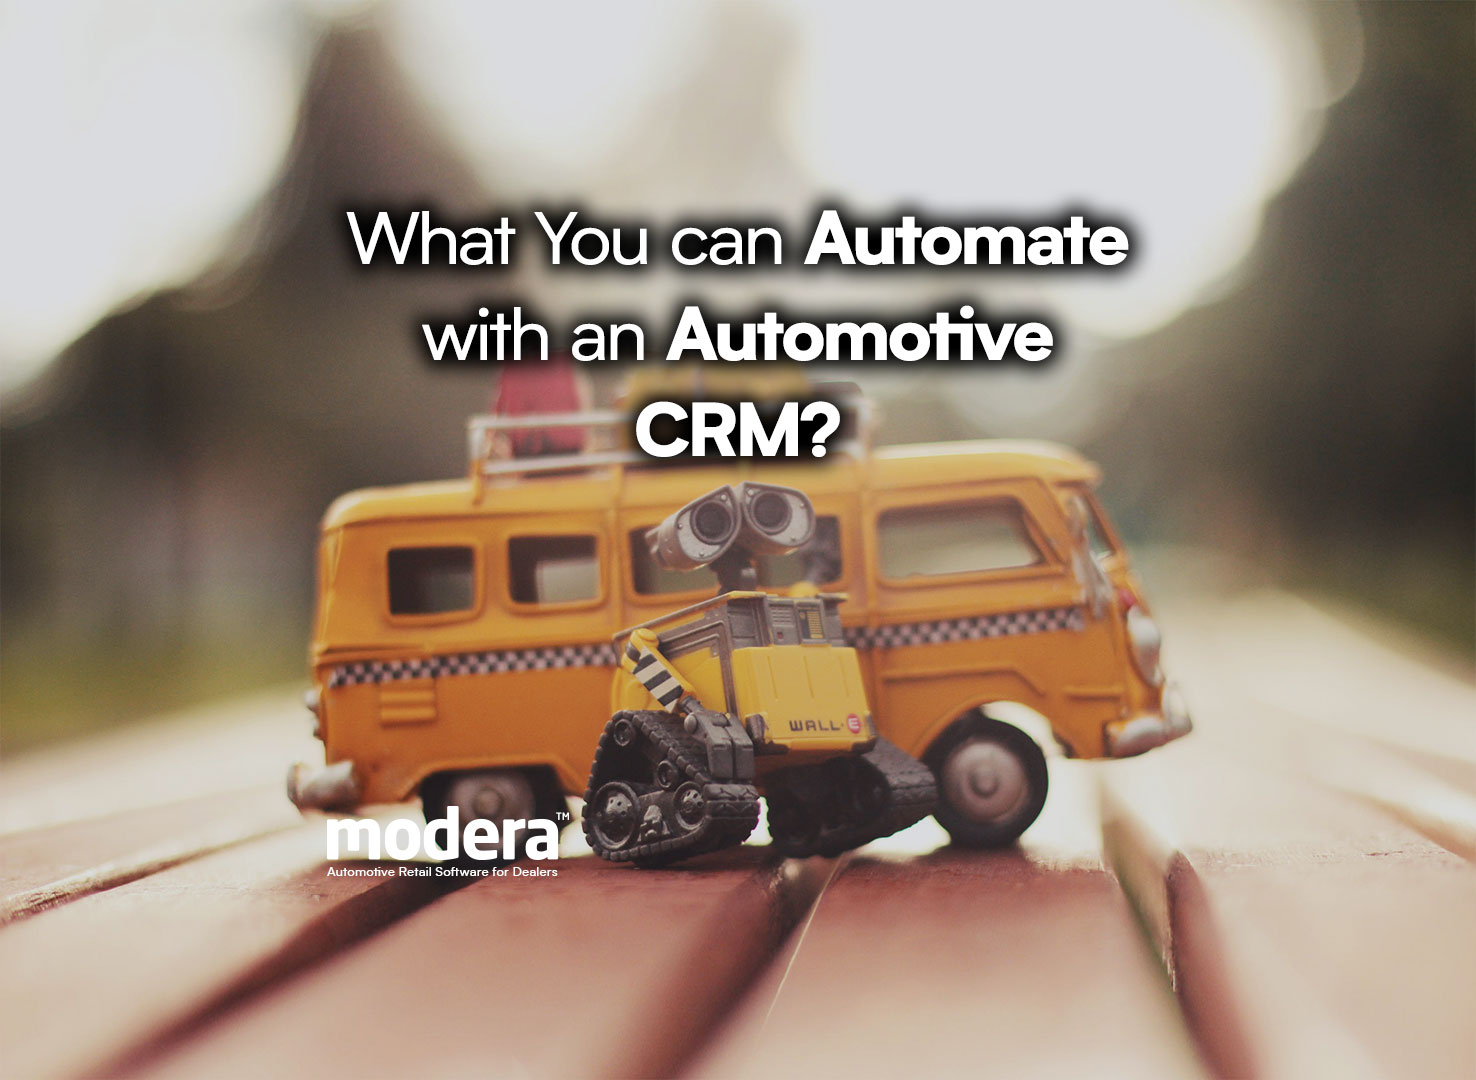 automate with automotive crm